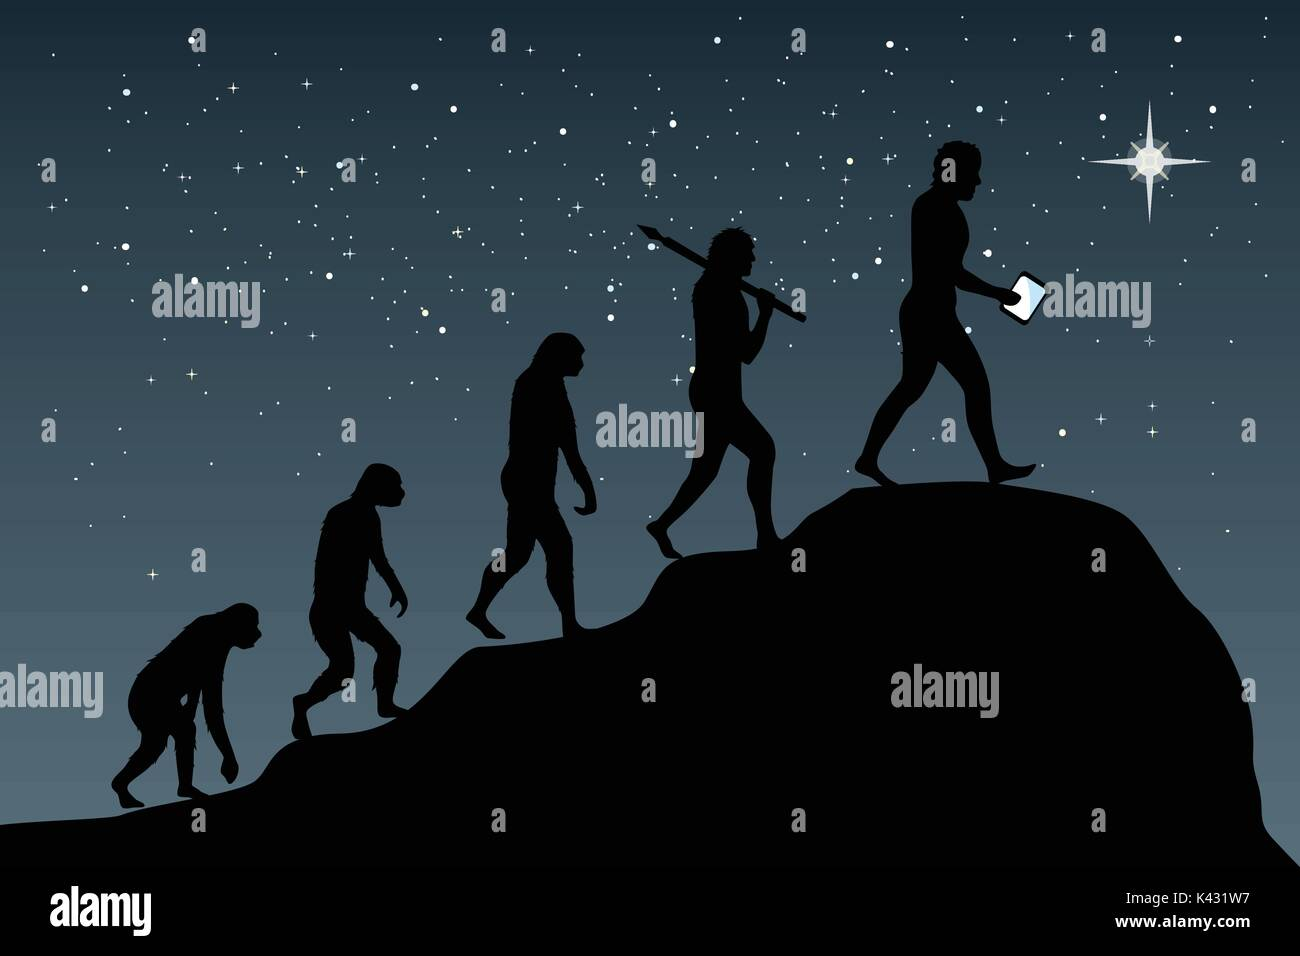 Human evolution into the present digital world. Business risk concept! - Stock Image